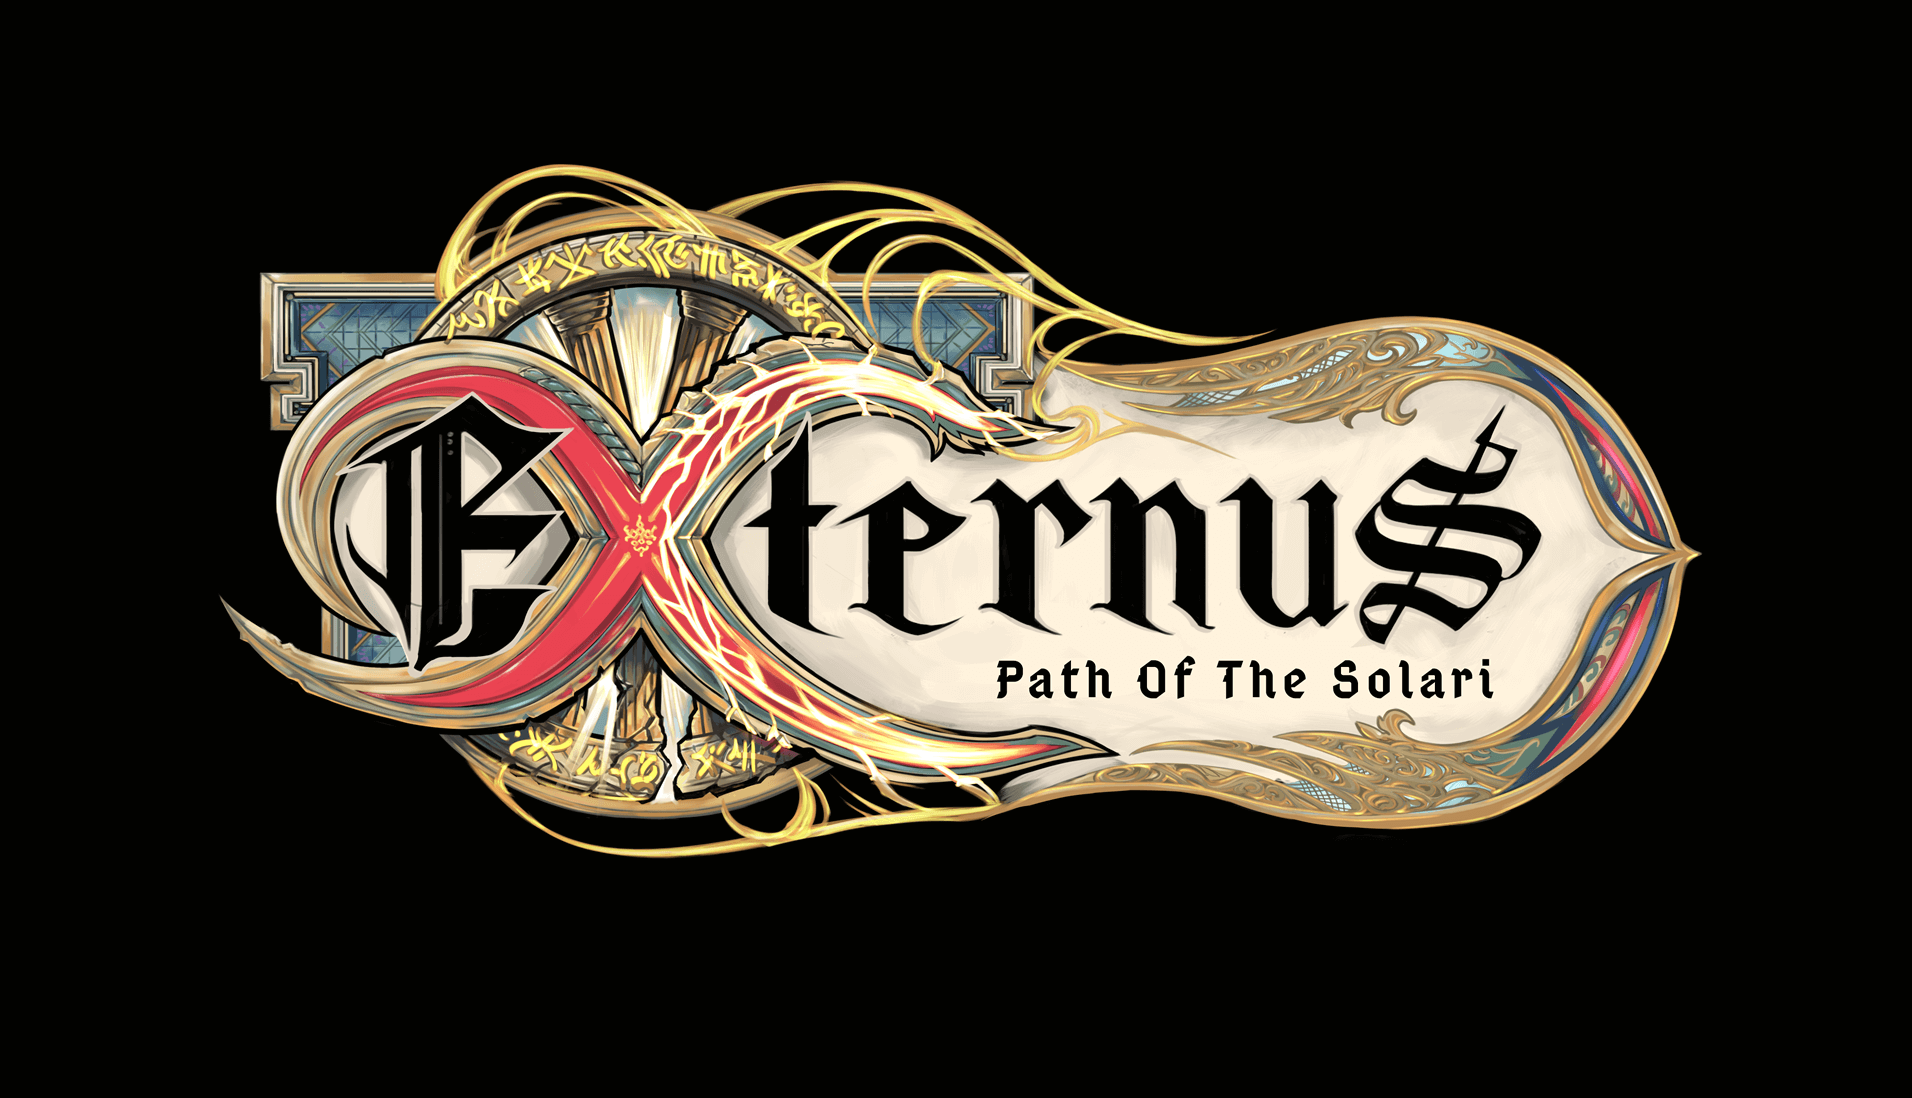 Externus Path of the Solari